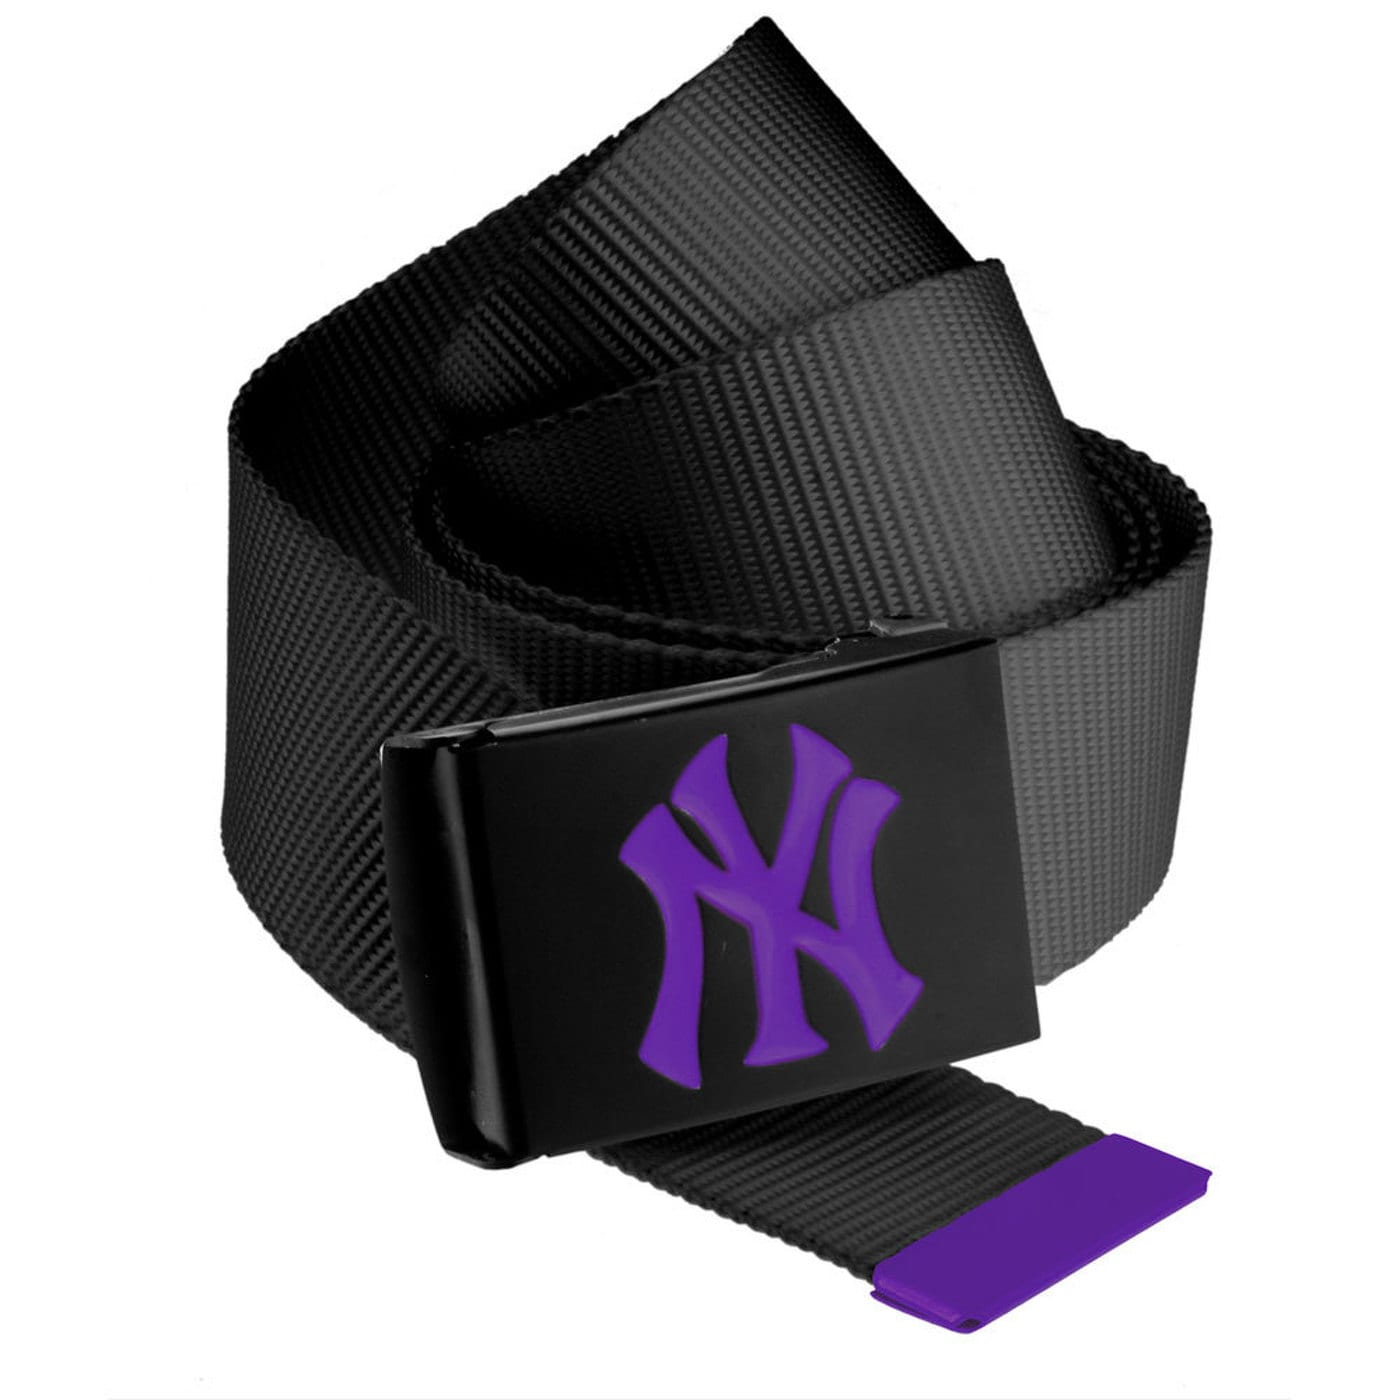 MD MLB Premium Black Woven Belt Single NY black / purple